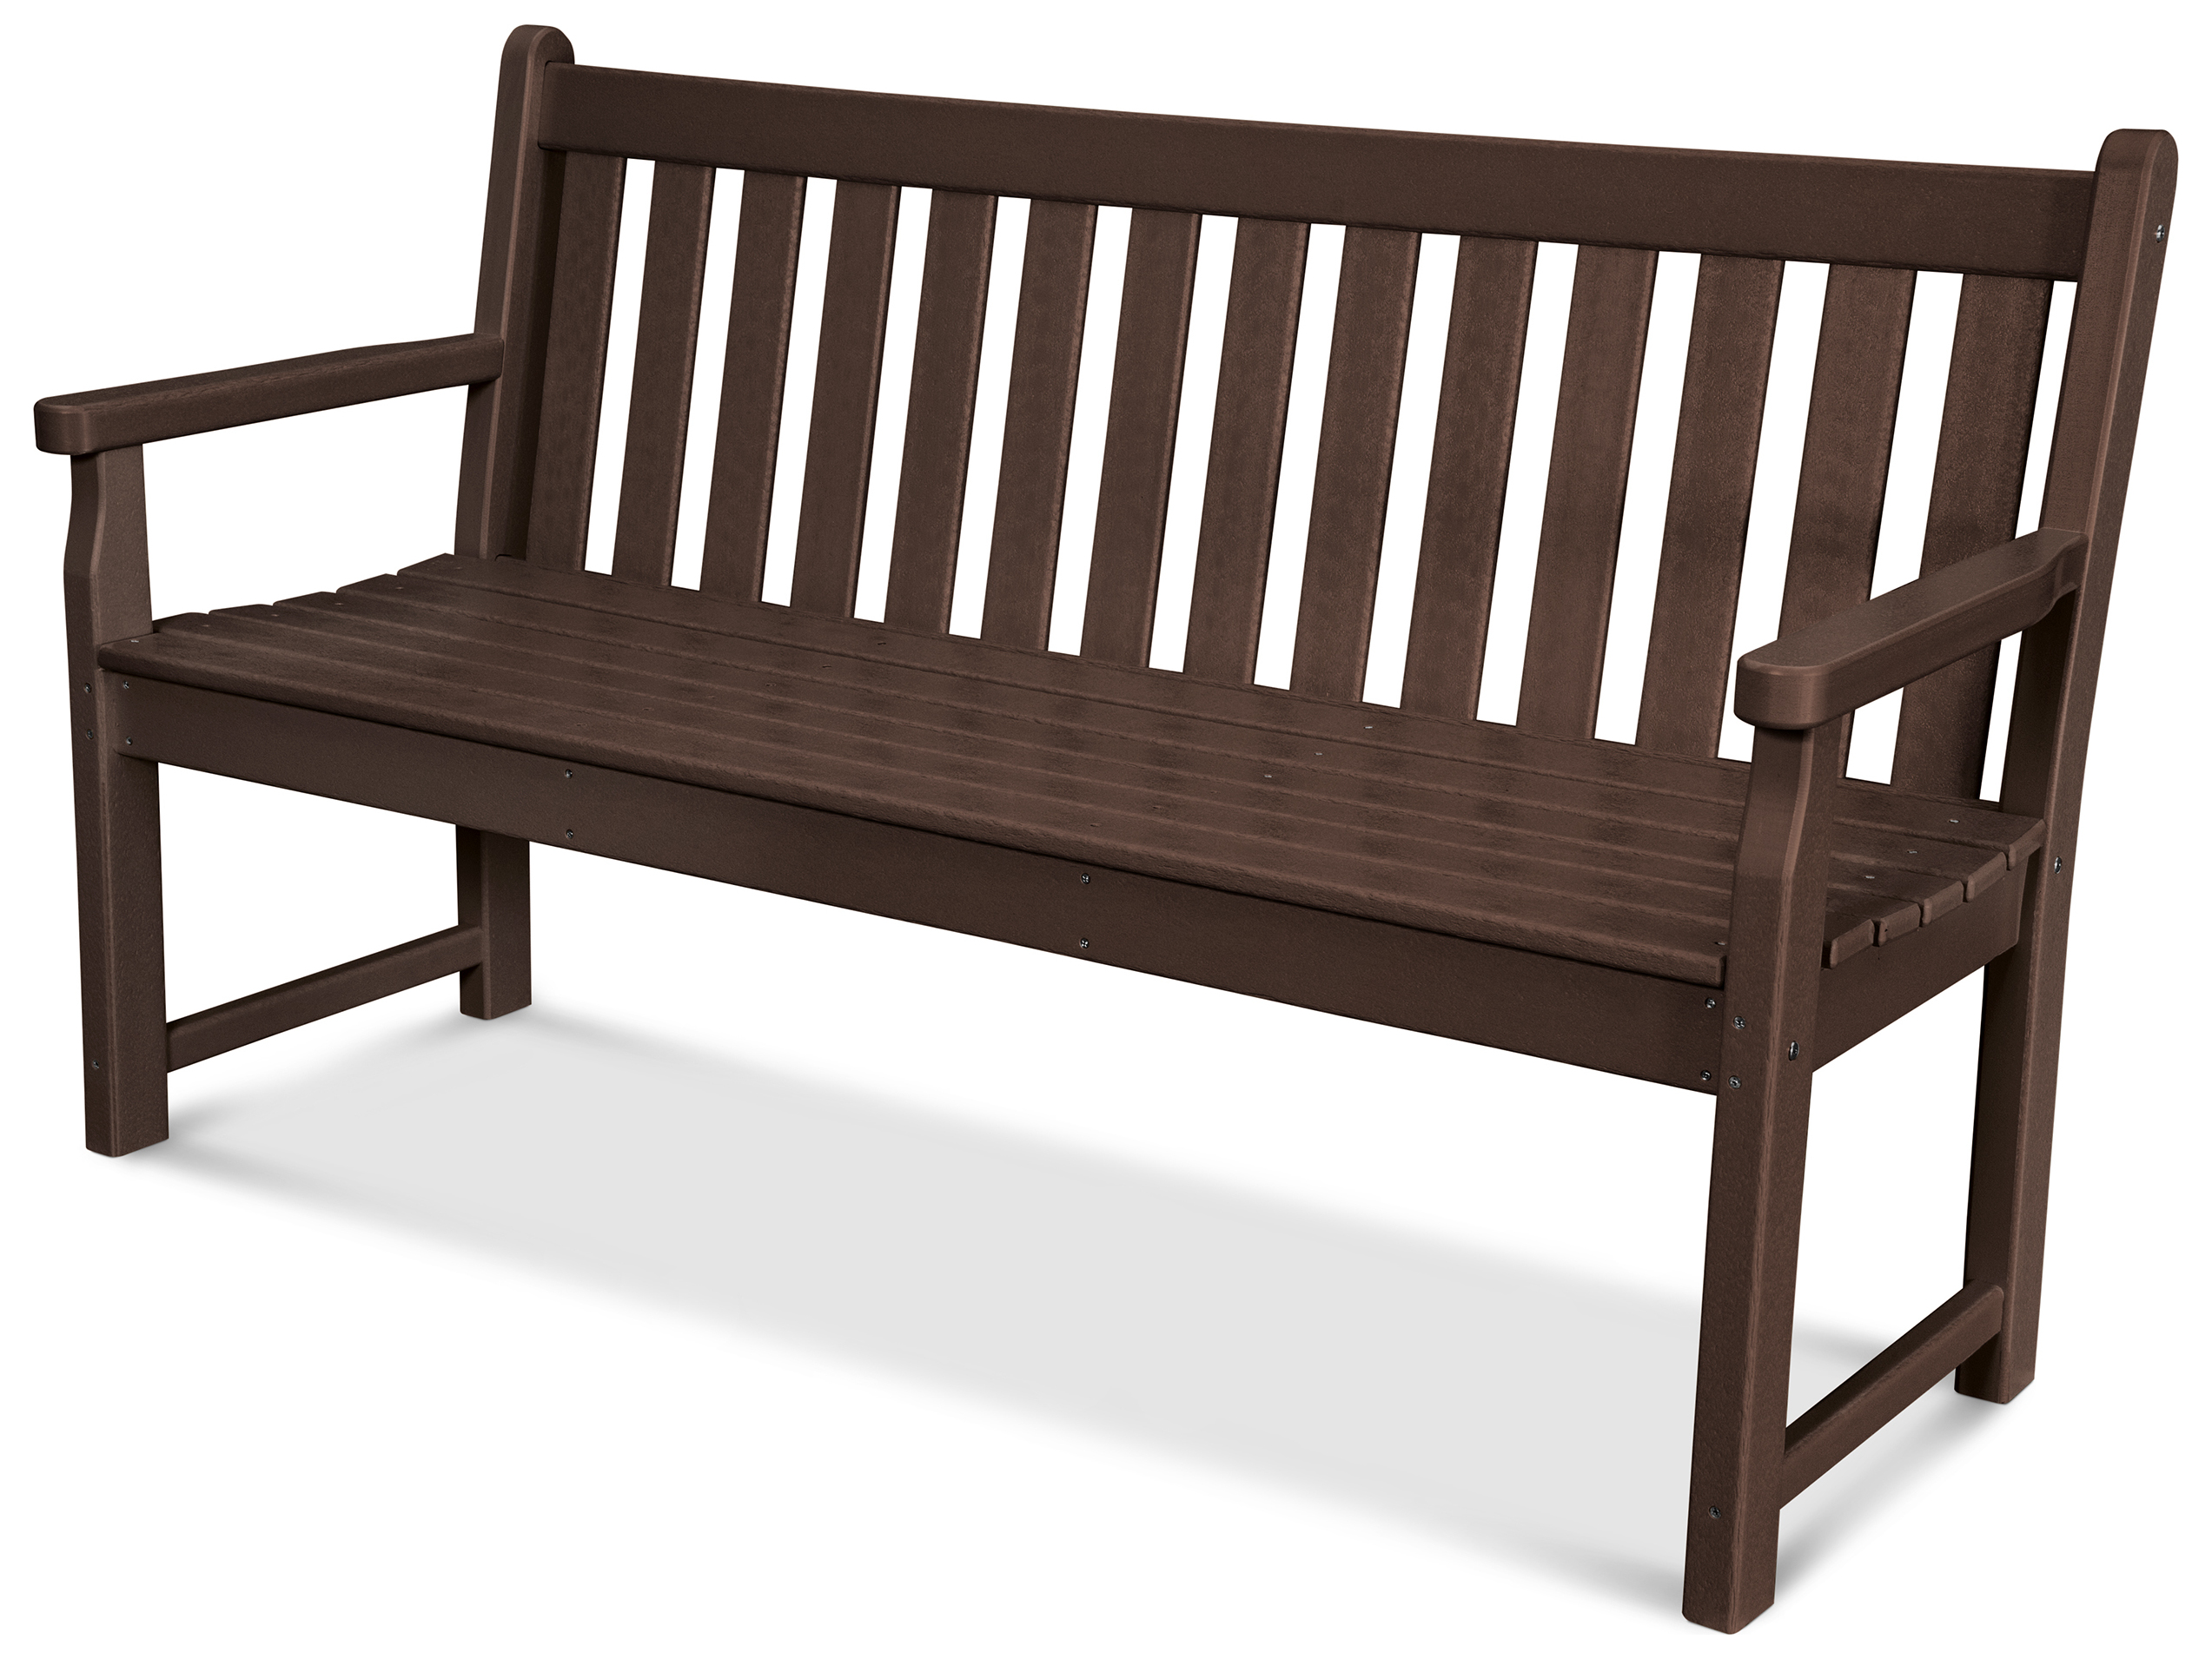 Polywood Traditional Garden Recycled Plastic Bench Tgb60